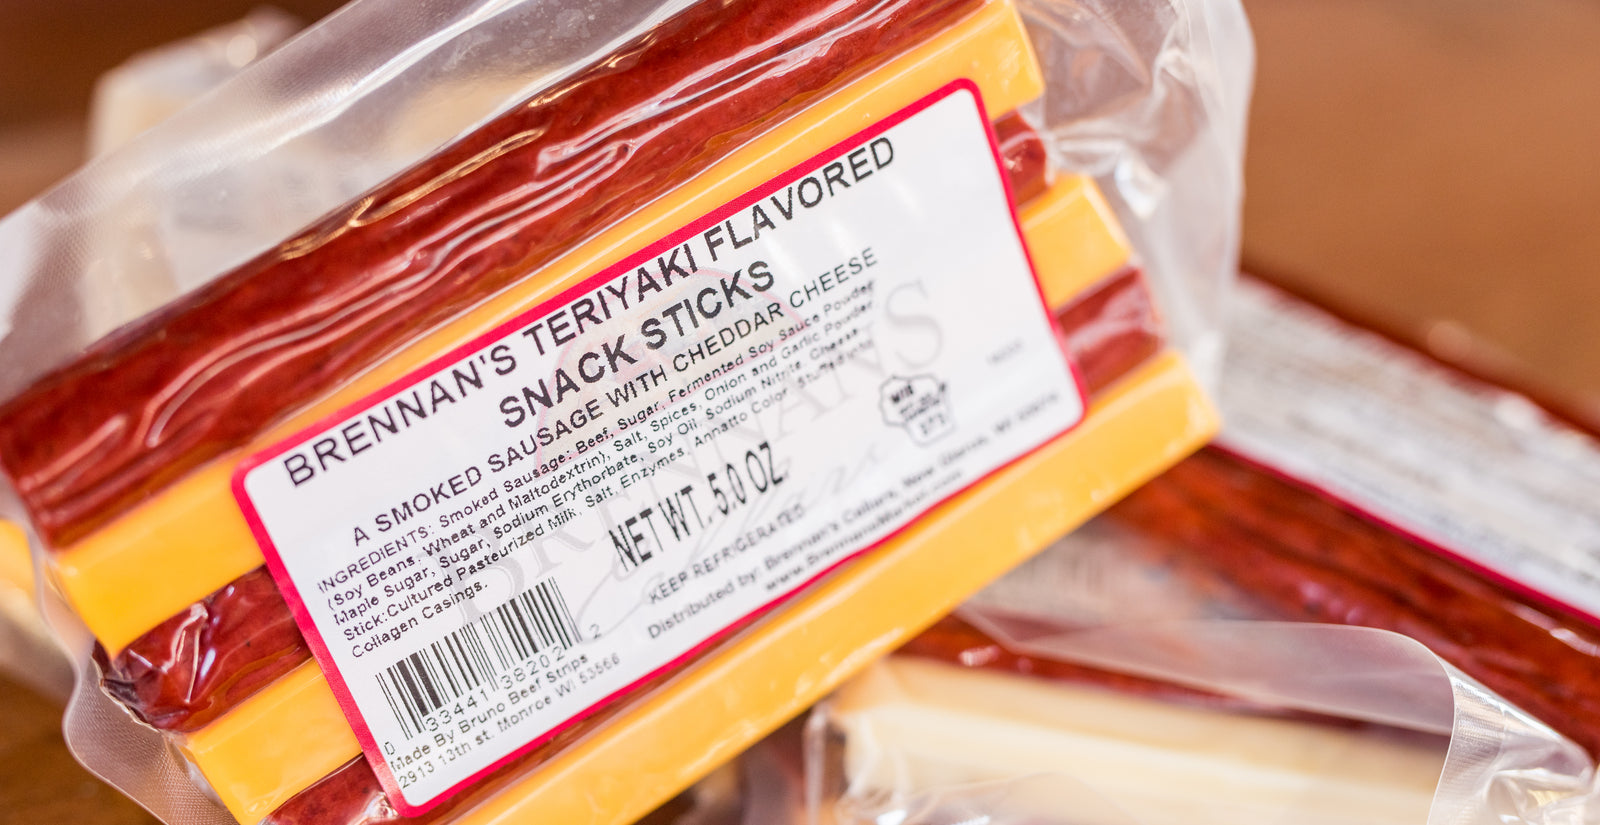 Teriyaki Beef Sticks & Cheddar Cheese - Brennans Market